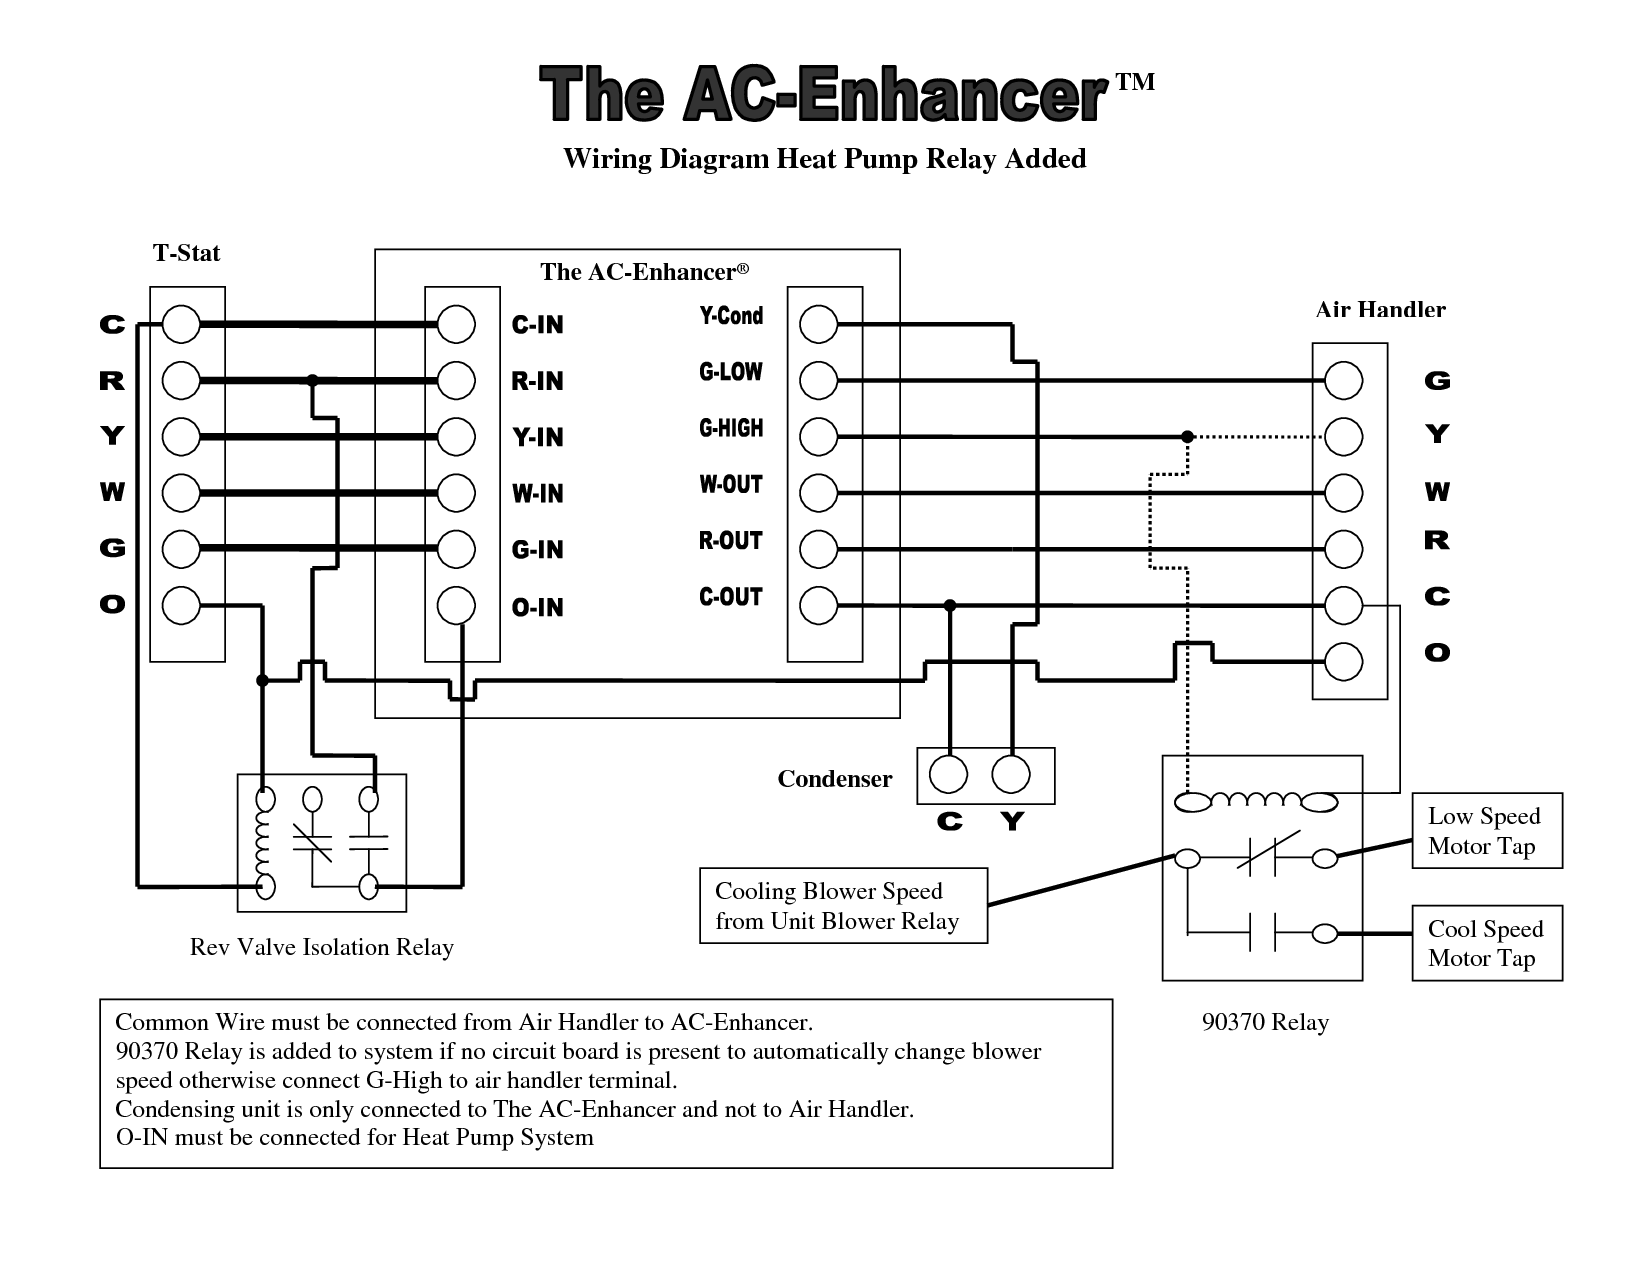 5a0e10d9c7d3fced962dfa588f6c0c31 hvac wiring diagram www automanualparts com hvac wiring hvac compressor relay wiring diagram at n-0.co